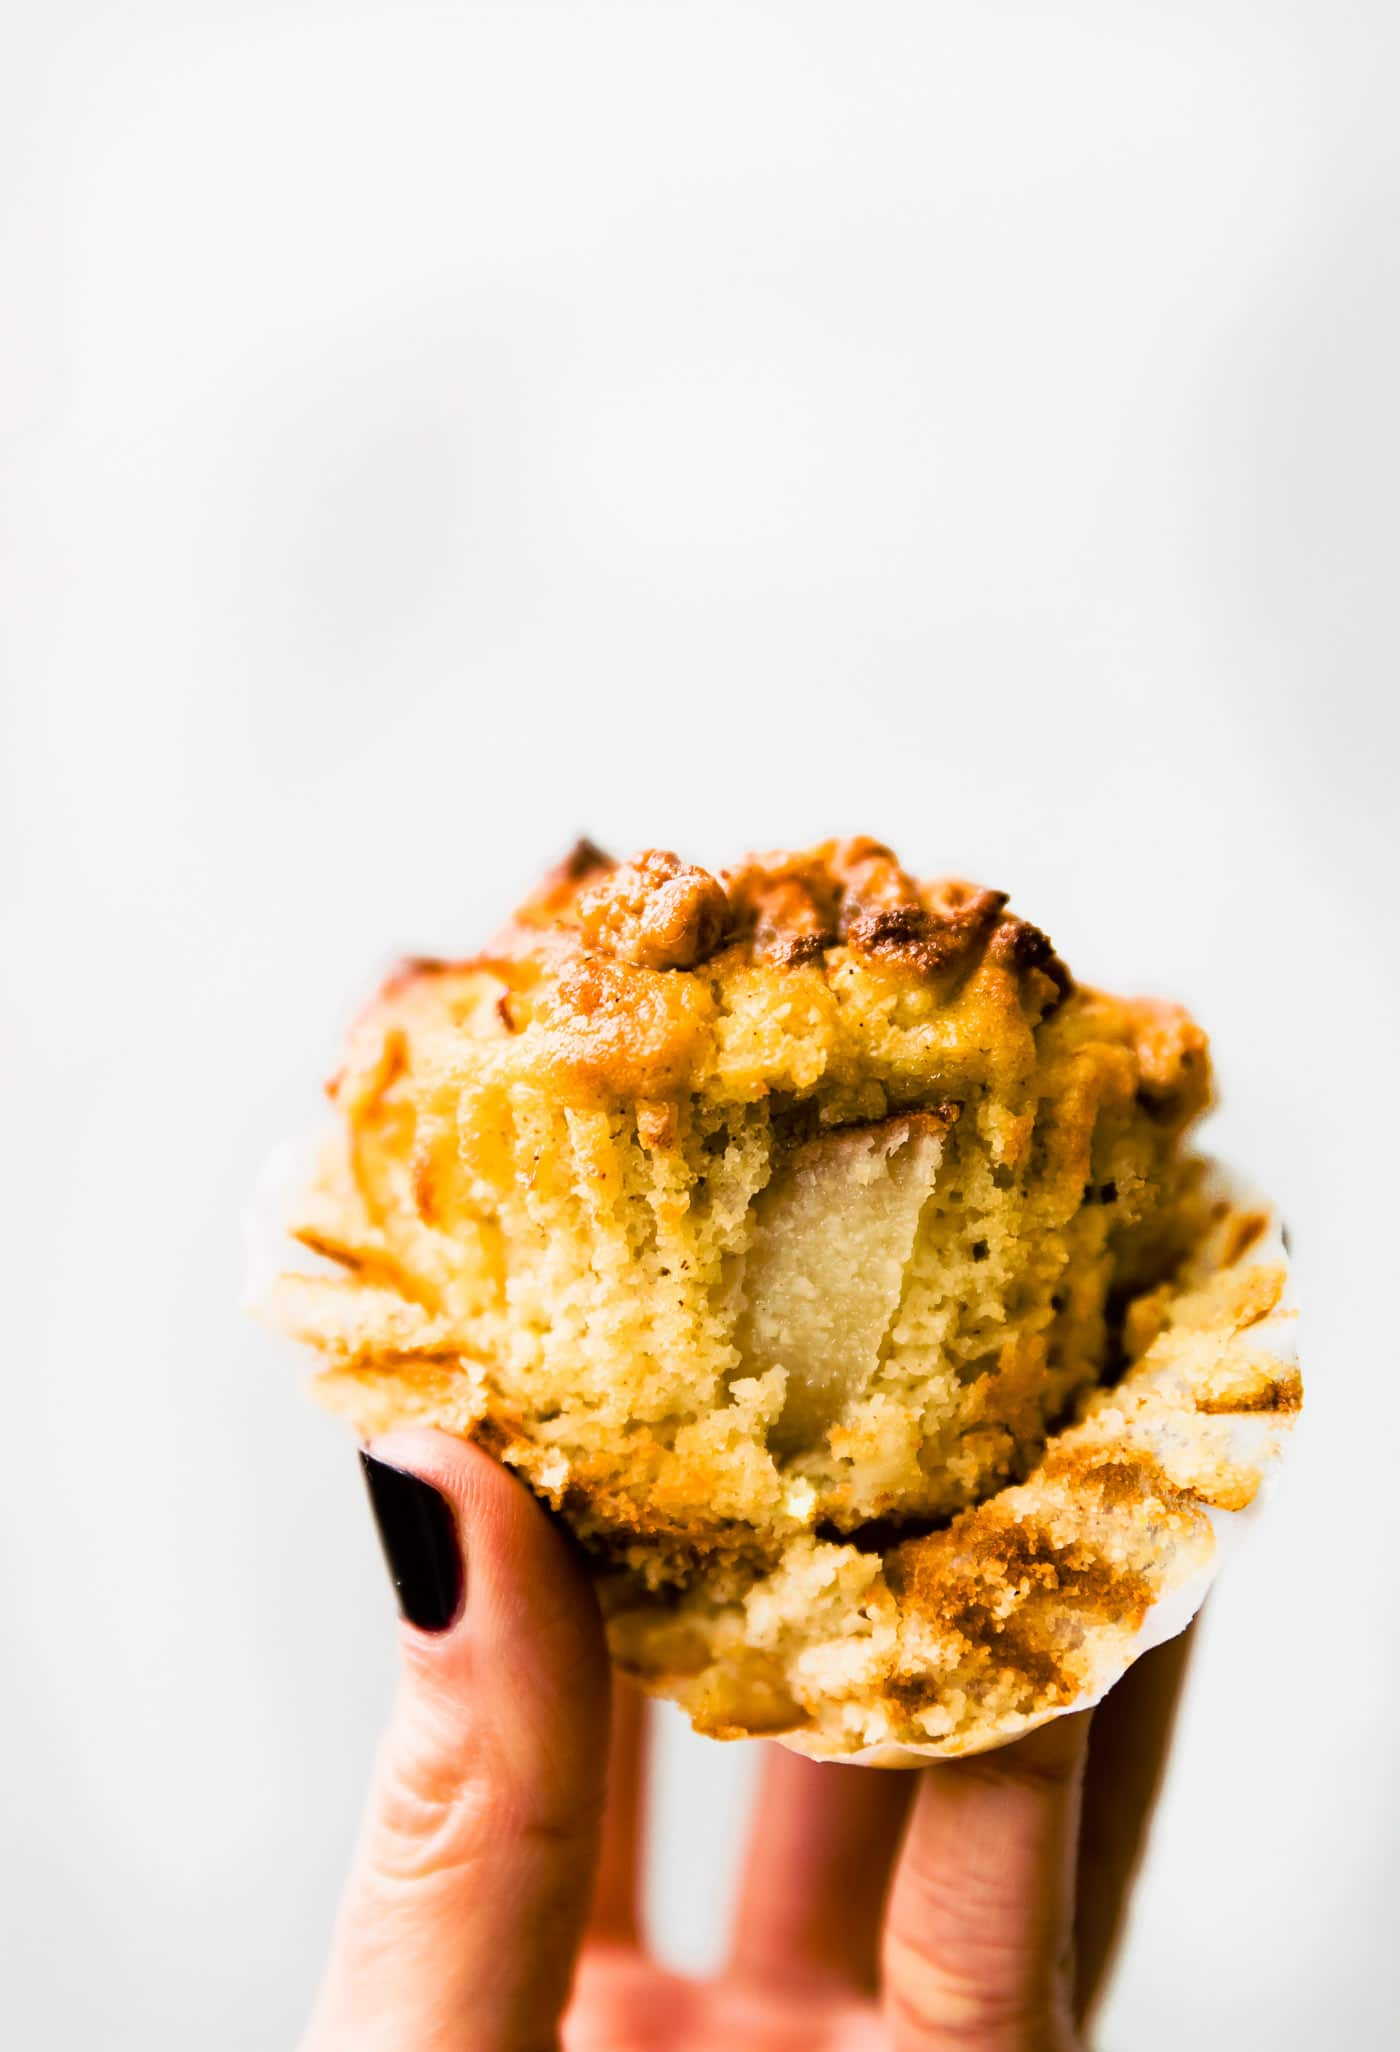 Grain free Spiced Pear Muffins with a sweet nutty topping! Delicious, easy to make paleo muffins (paleo friendly that is) that are Light, fluffy, and naturally sweetened.